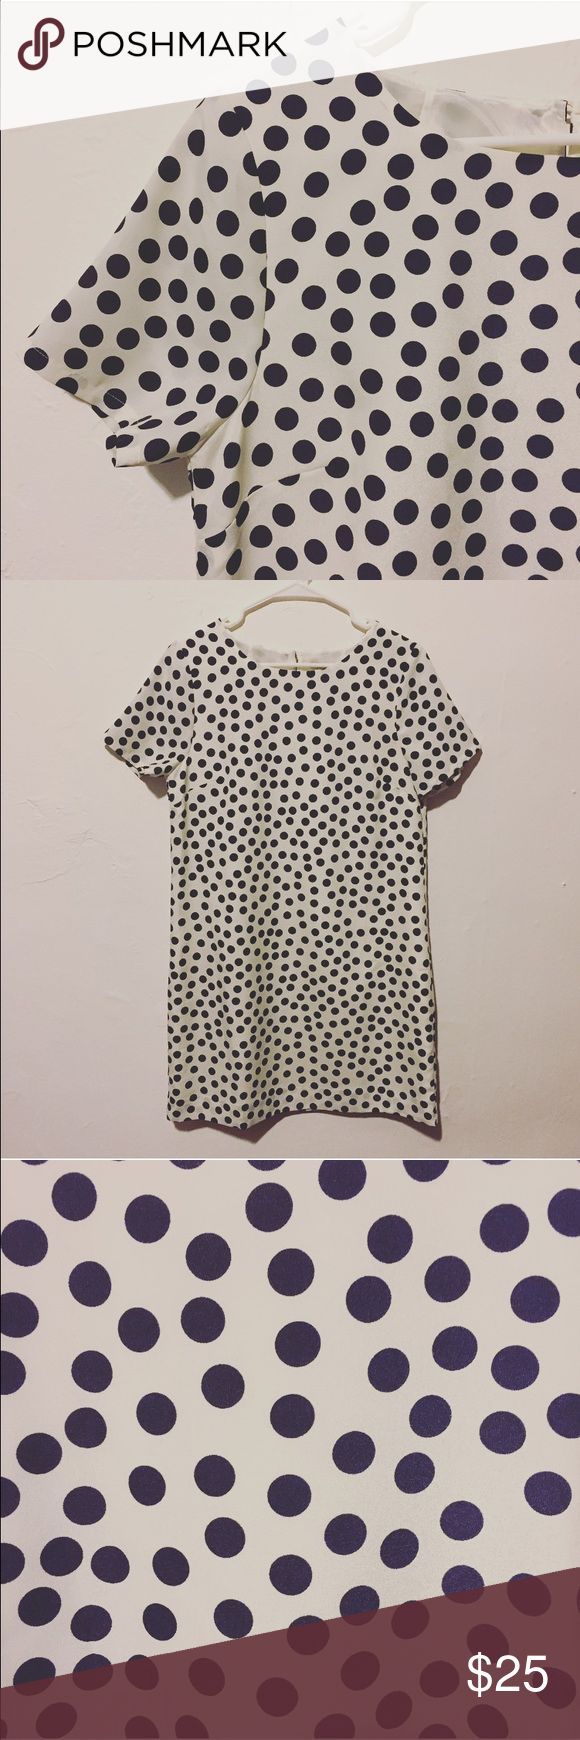 """J. Crew Polka Dot Shift Dress Never worn adorable polka shift dress from J. Crew. Dots are navy blue against a white background. Pair it with leggings and a leather jacket for the cold months and a simple pair of wedges for the warm ones! 100% polyester. 34"""" long from shoulder to hem. J. Crew Dresses"""